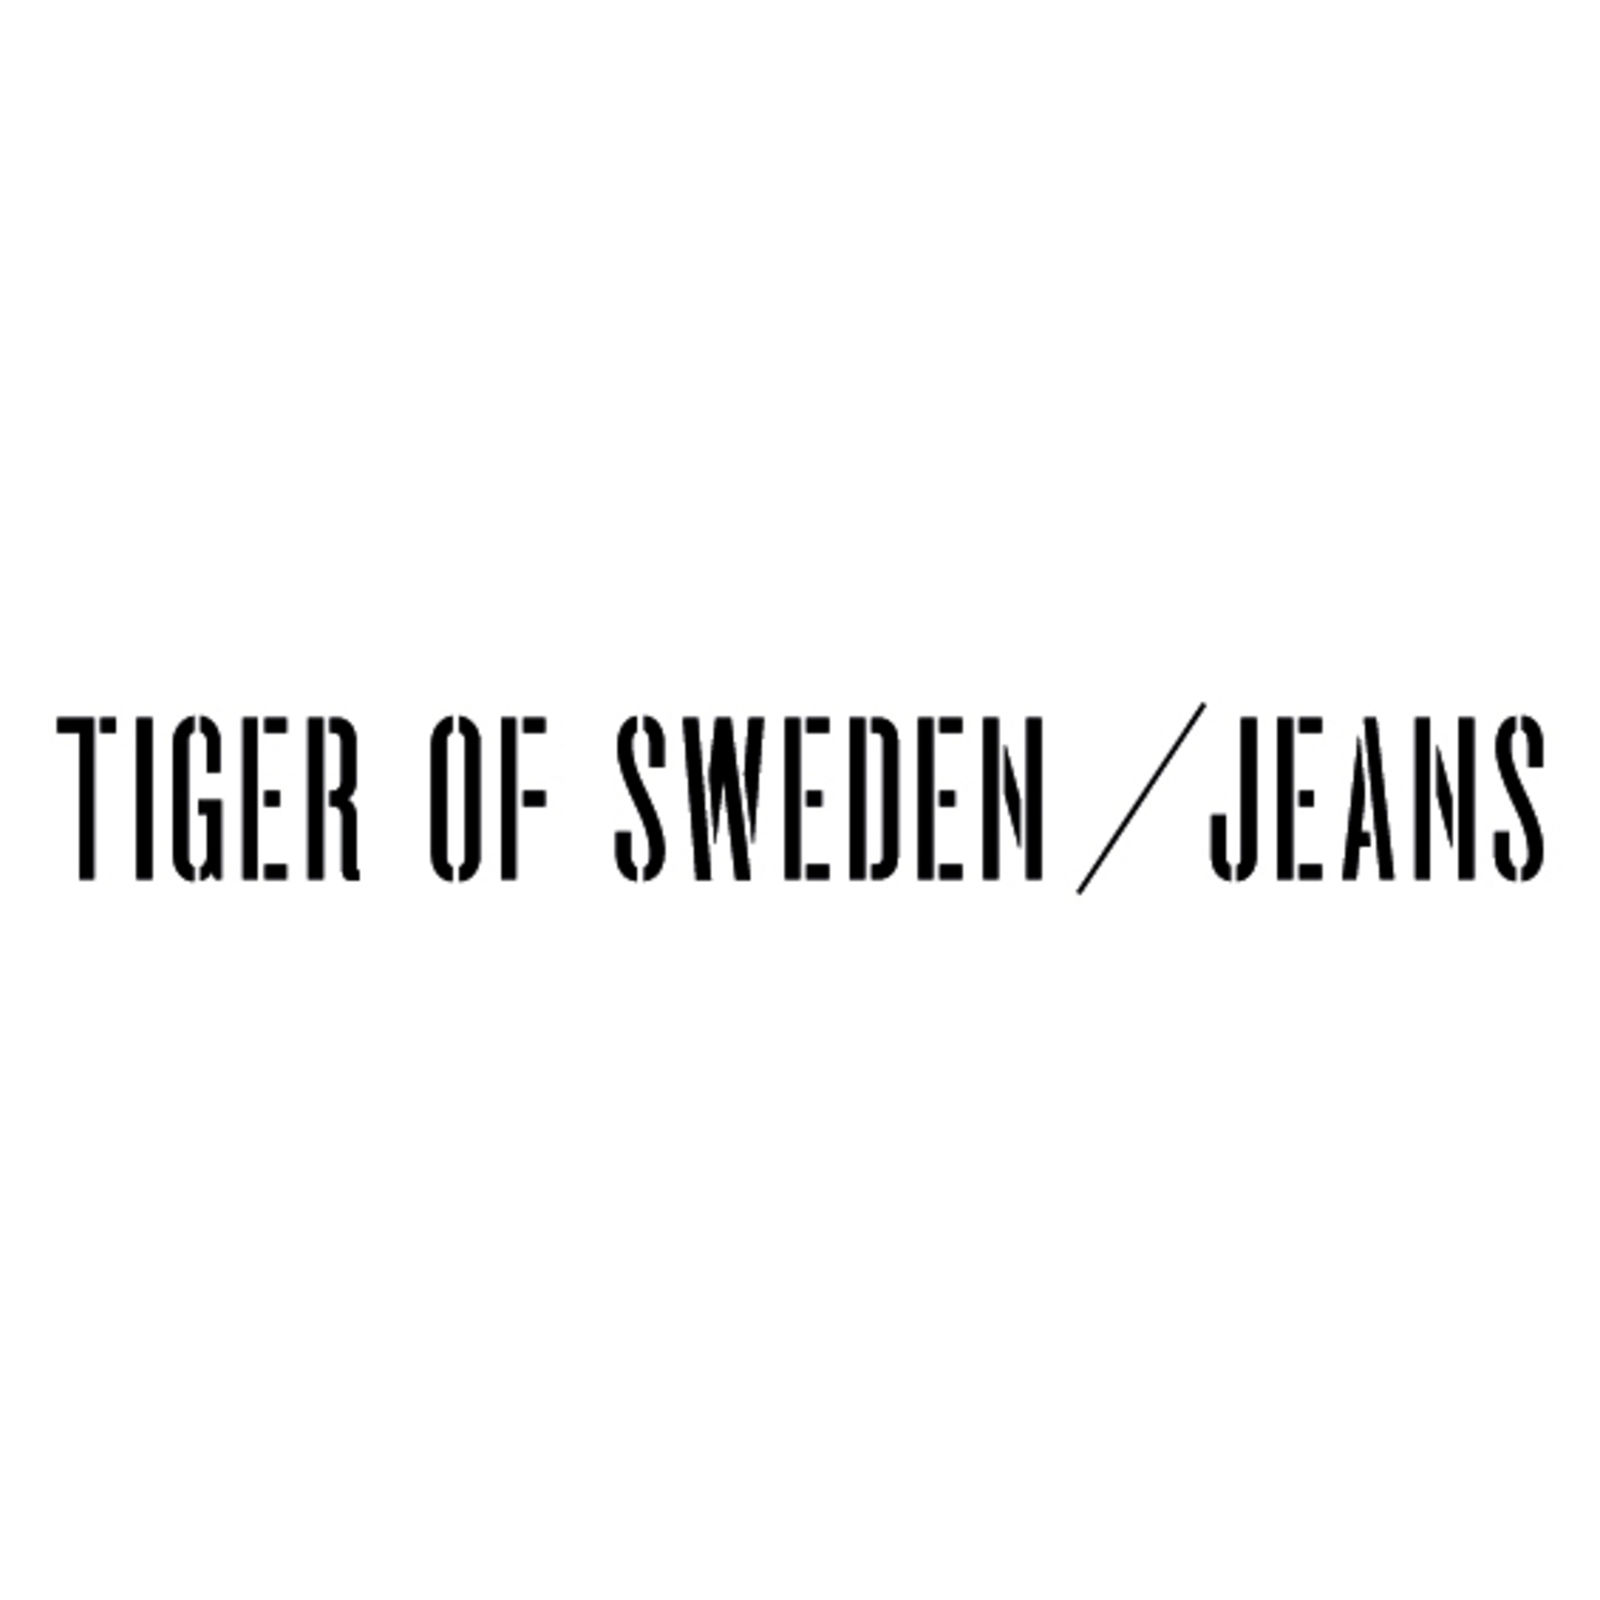 TIGER OF SWEDEN/ JEANS (Image 1)